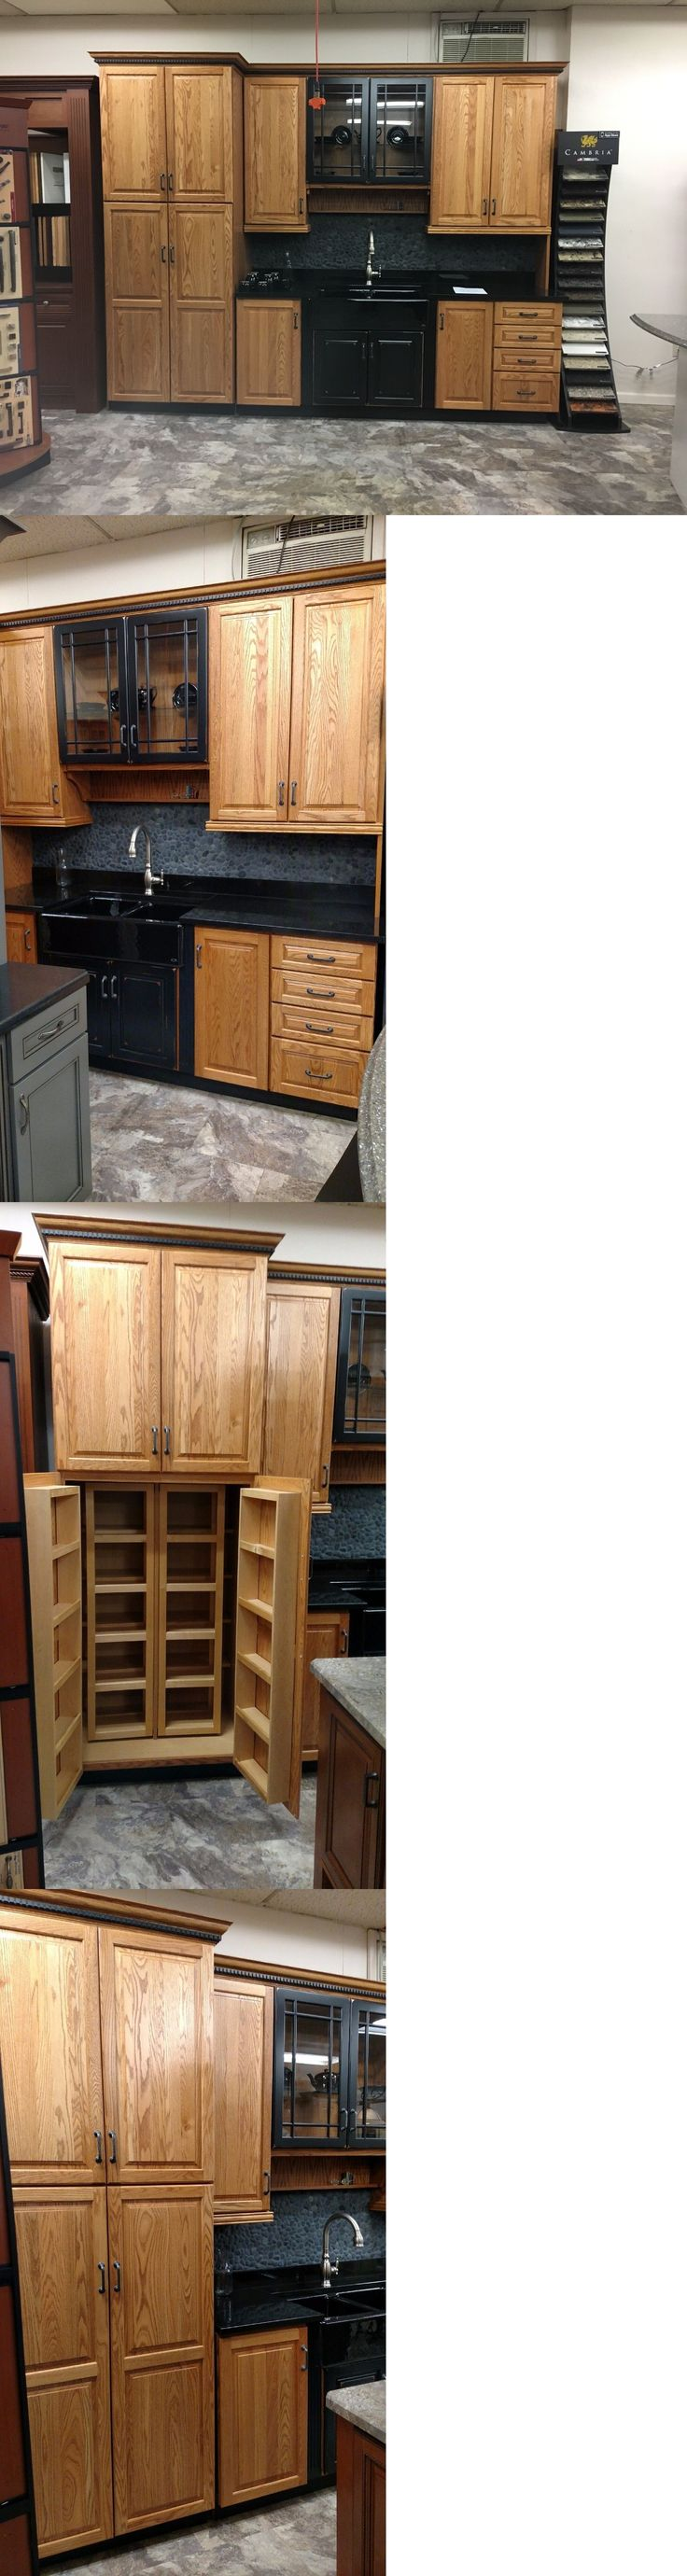 36 in h x 24 in w praline rectangular bathroom mirror at lowes com - Cabinets 85879 Kraftmaid Honey Spice Oak Kitchen With Pantry Buy It Now Only